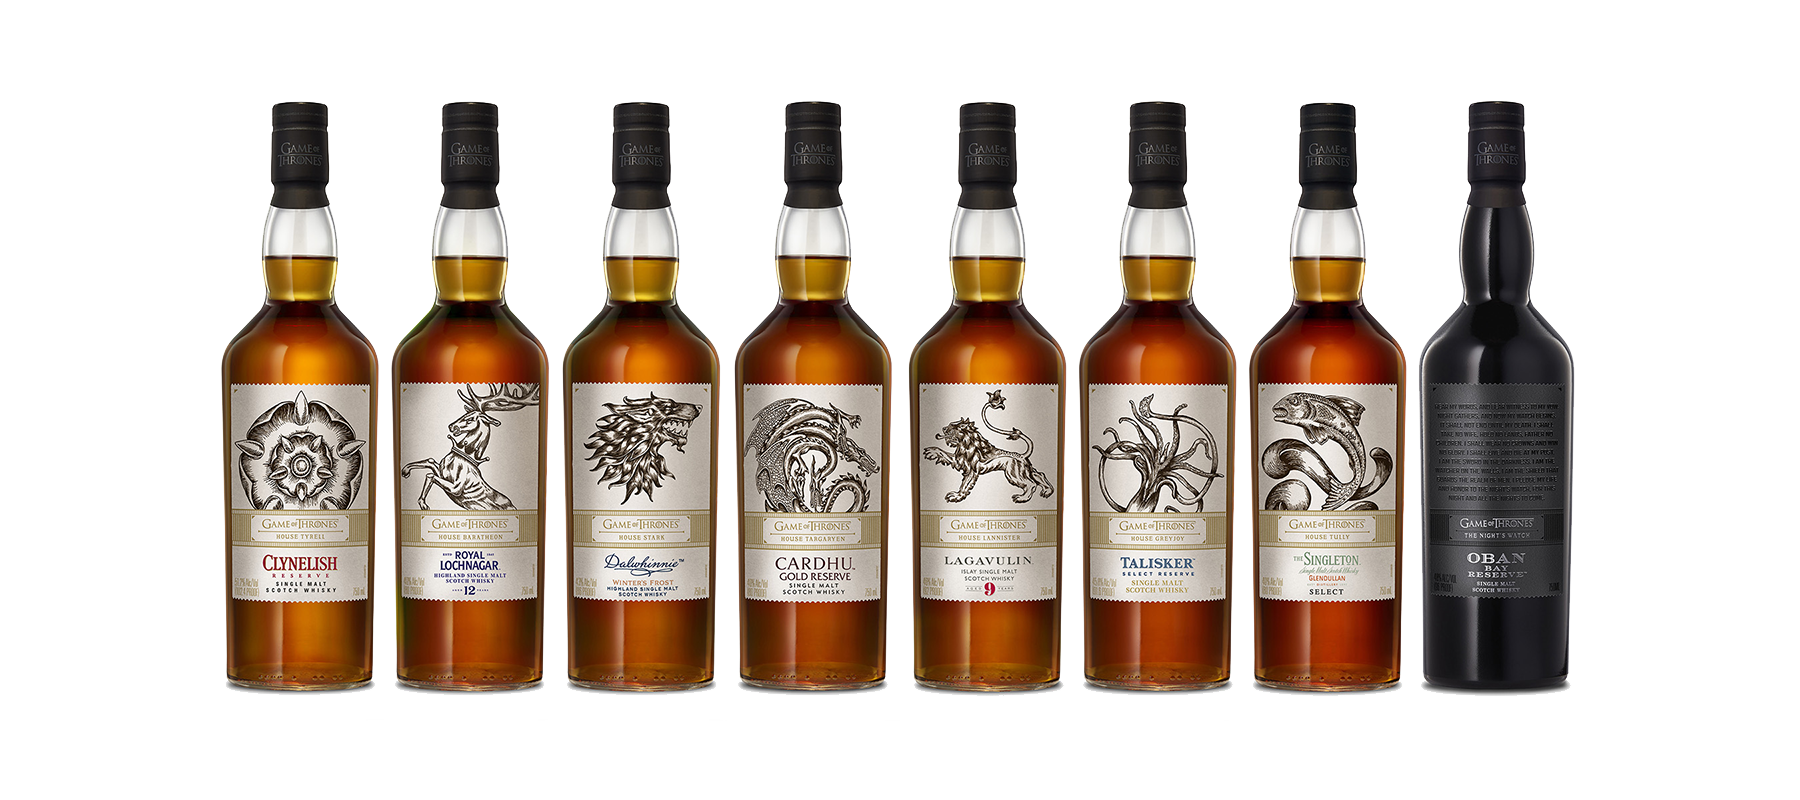 Diageo's Game of Thrones Single Malt Scotch Whisky Collection. Image courtesy Diageo.